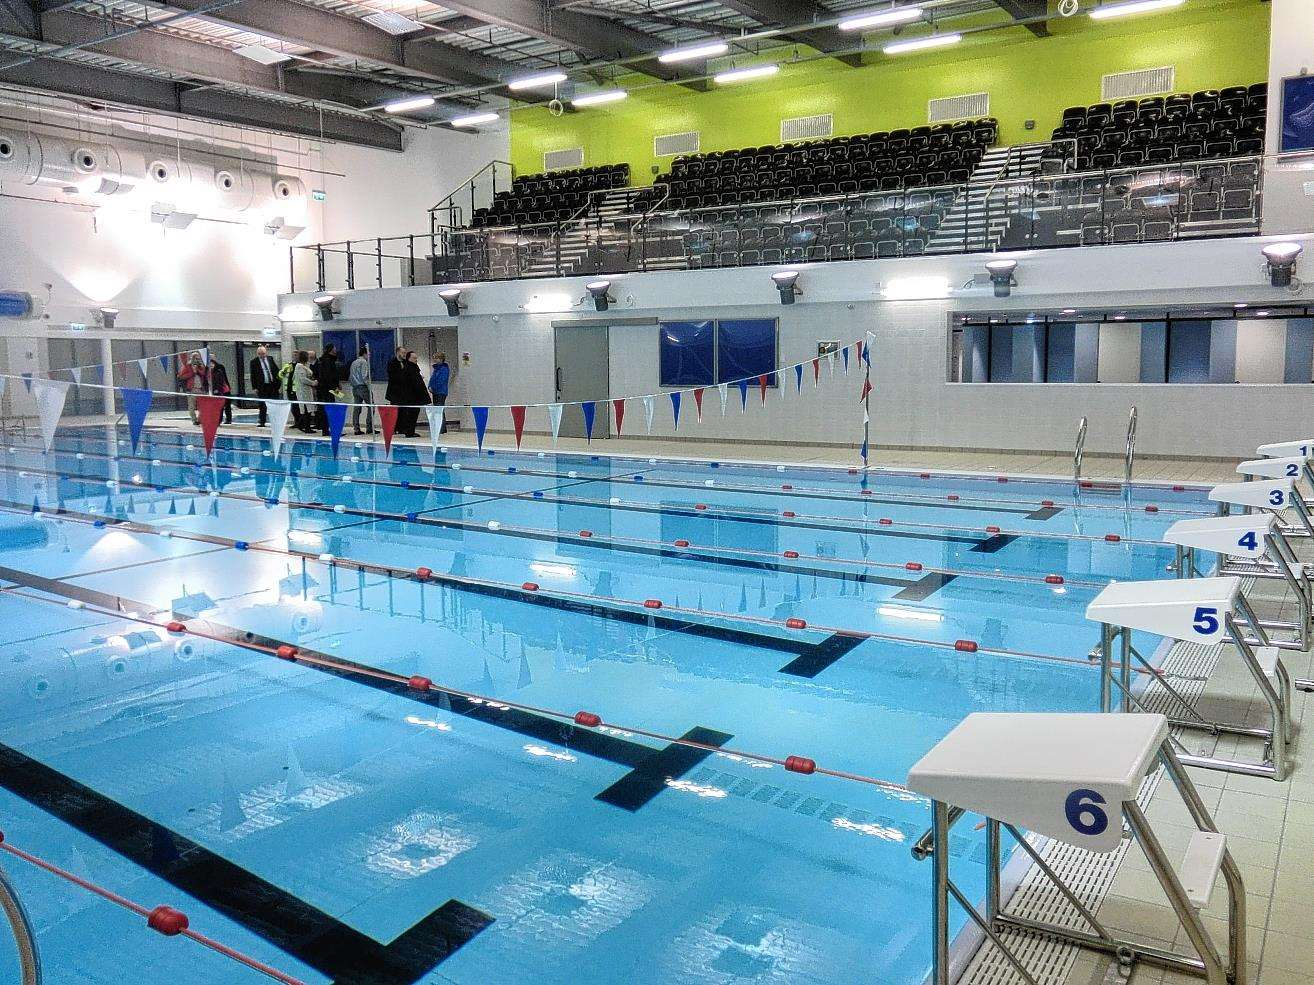 Wick Swimming Pool features six lanes with sauna and steam room facilities.